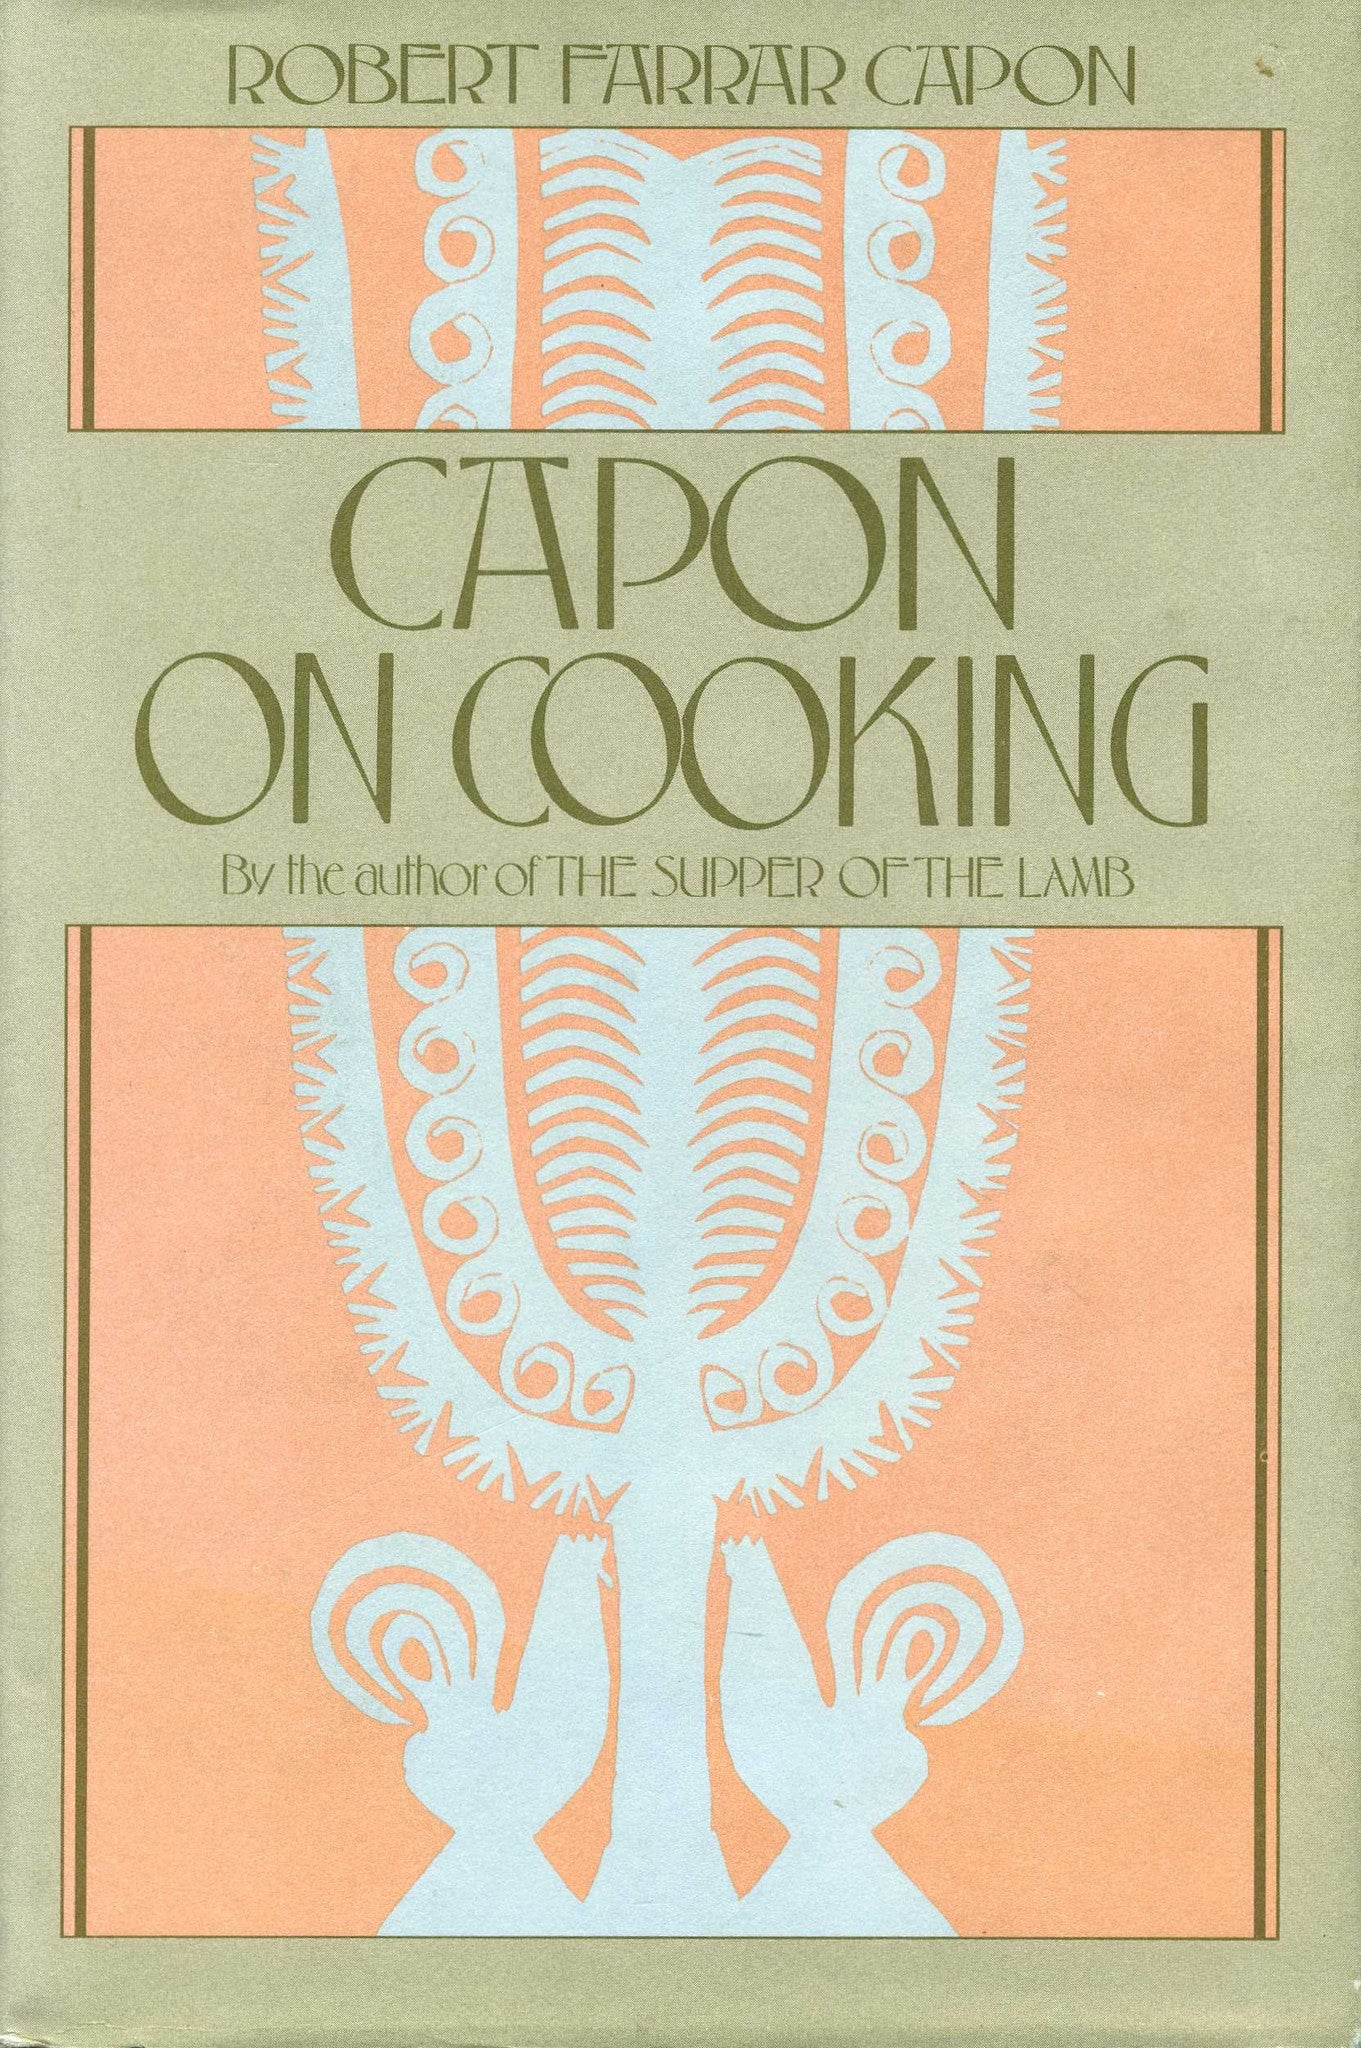 CAPON ON COOKING